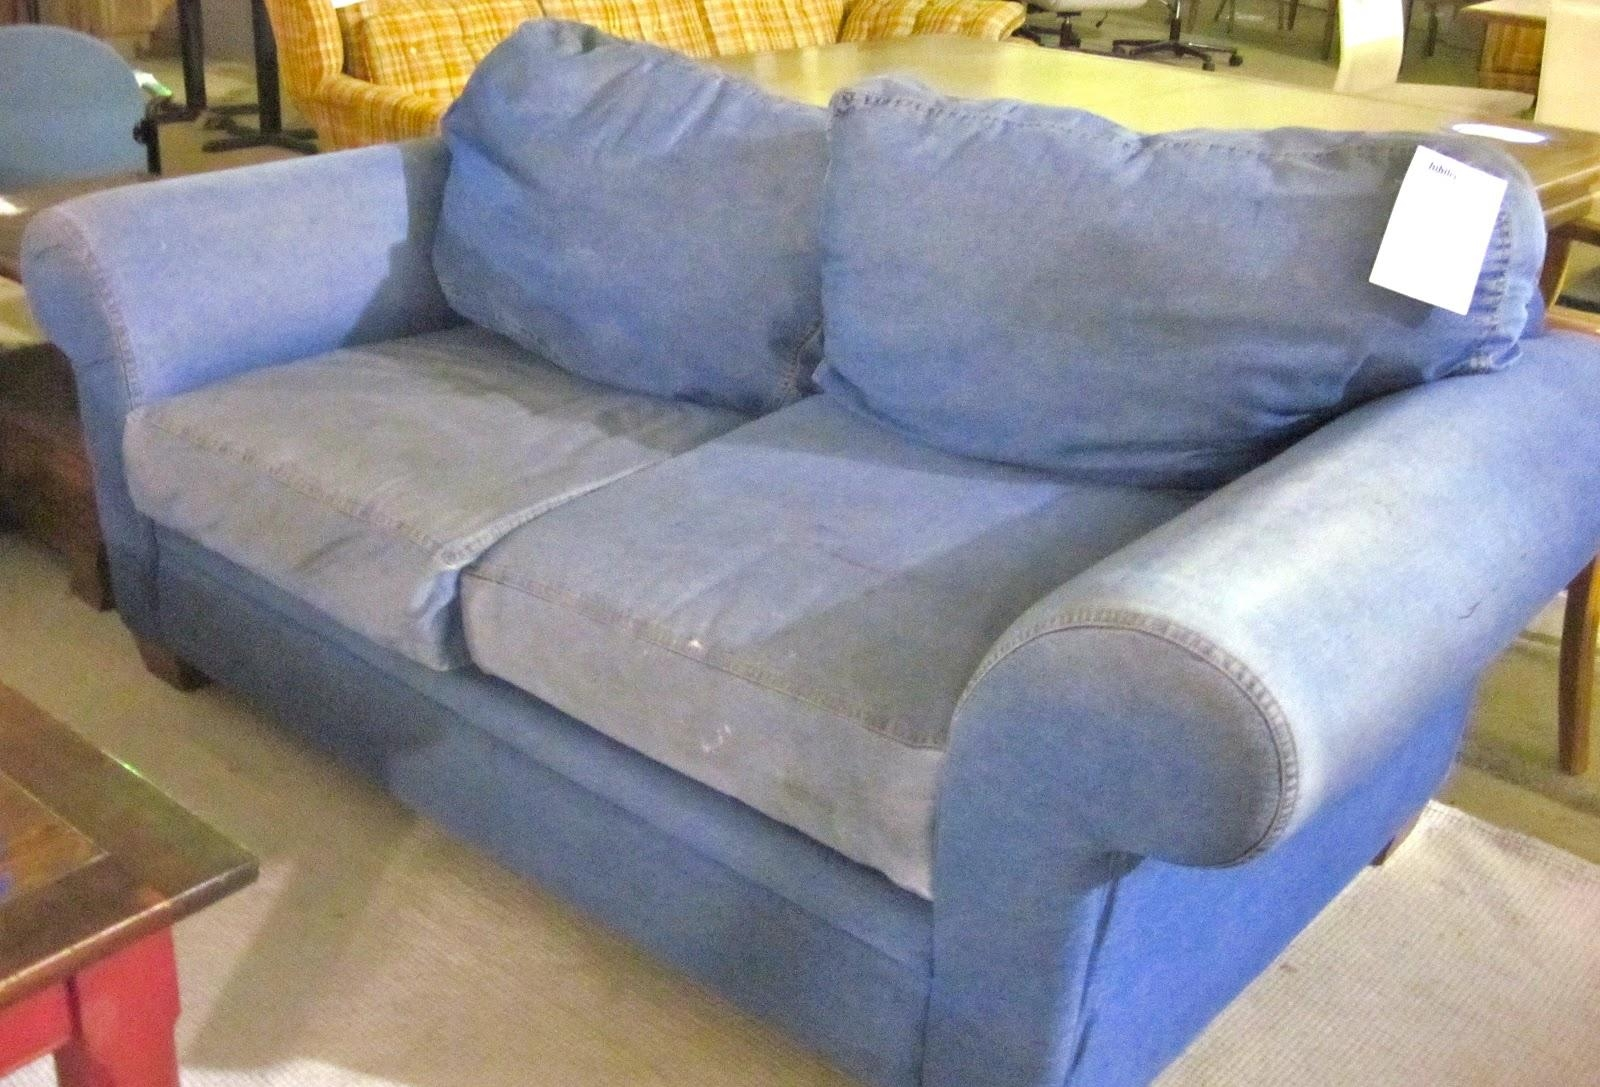 Denim Sofa And Loveseat With Concept Gallery 28378 | Kengire For Denim Loveseats (Image 10 of 20)